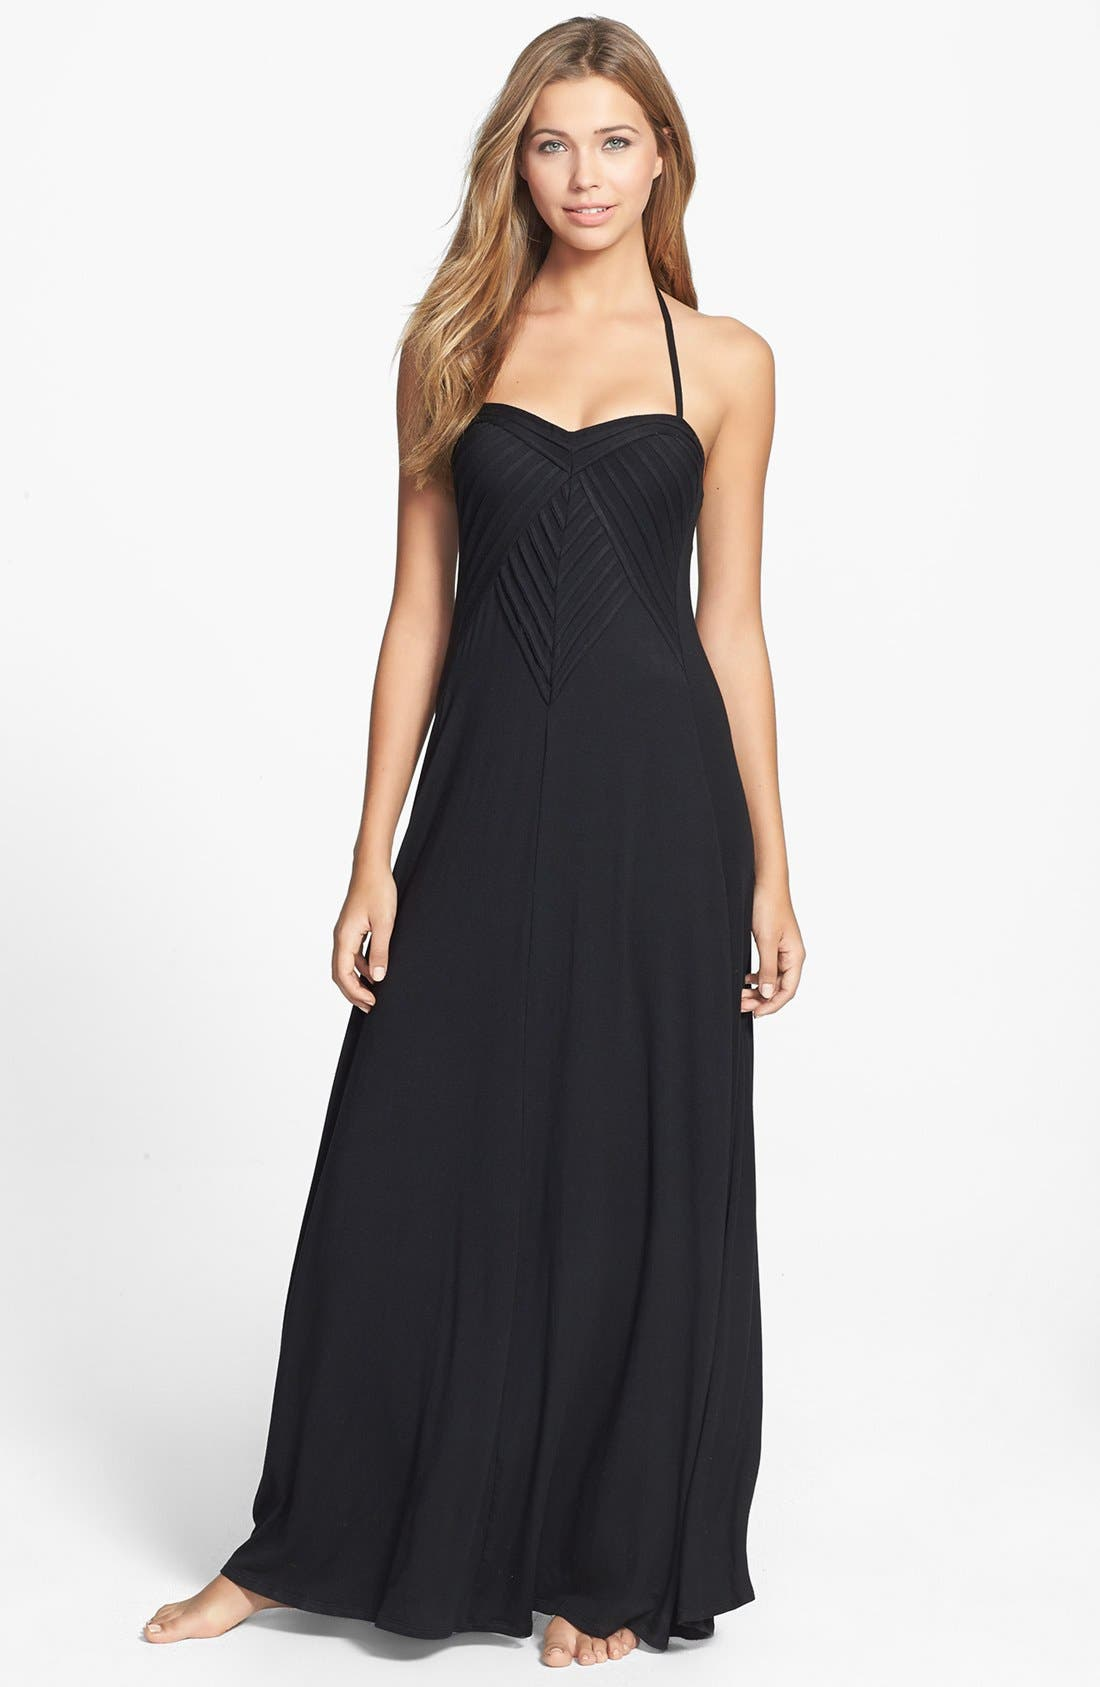 Alternate Image 1 Selected - Robin Piccone 'Karina' Pleat Cover-Up Maxi Dress